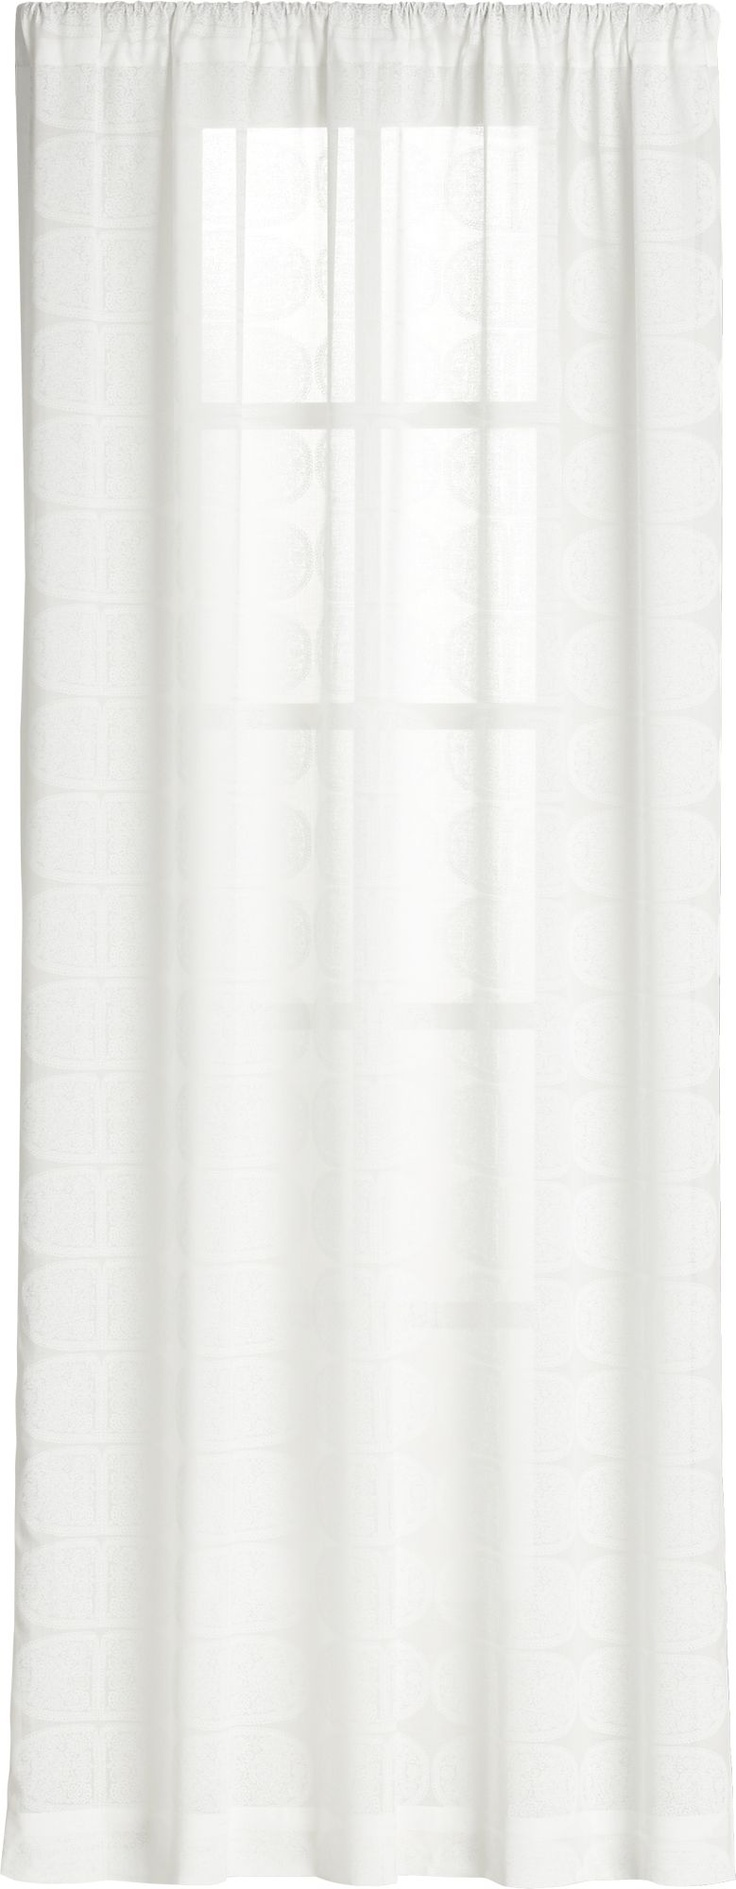 Sheer white bedroom curtains - 17 Best Ideas About White Sheer Curtains On Pinterest White Curtains Sheer Curtains And Curtain Tracks Inspiration